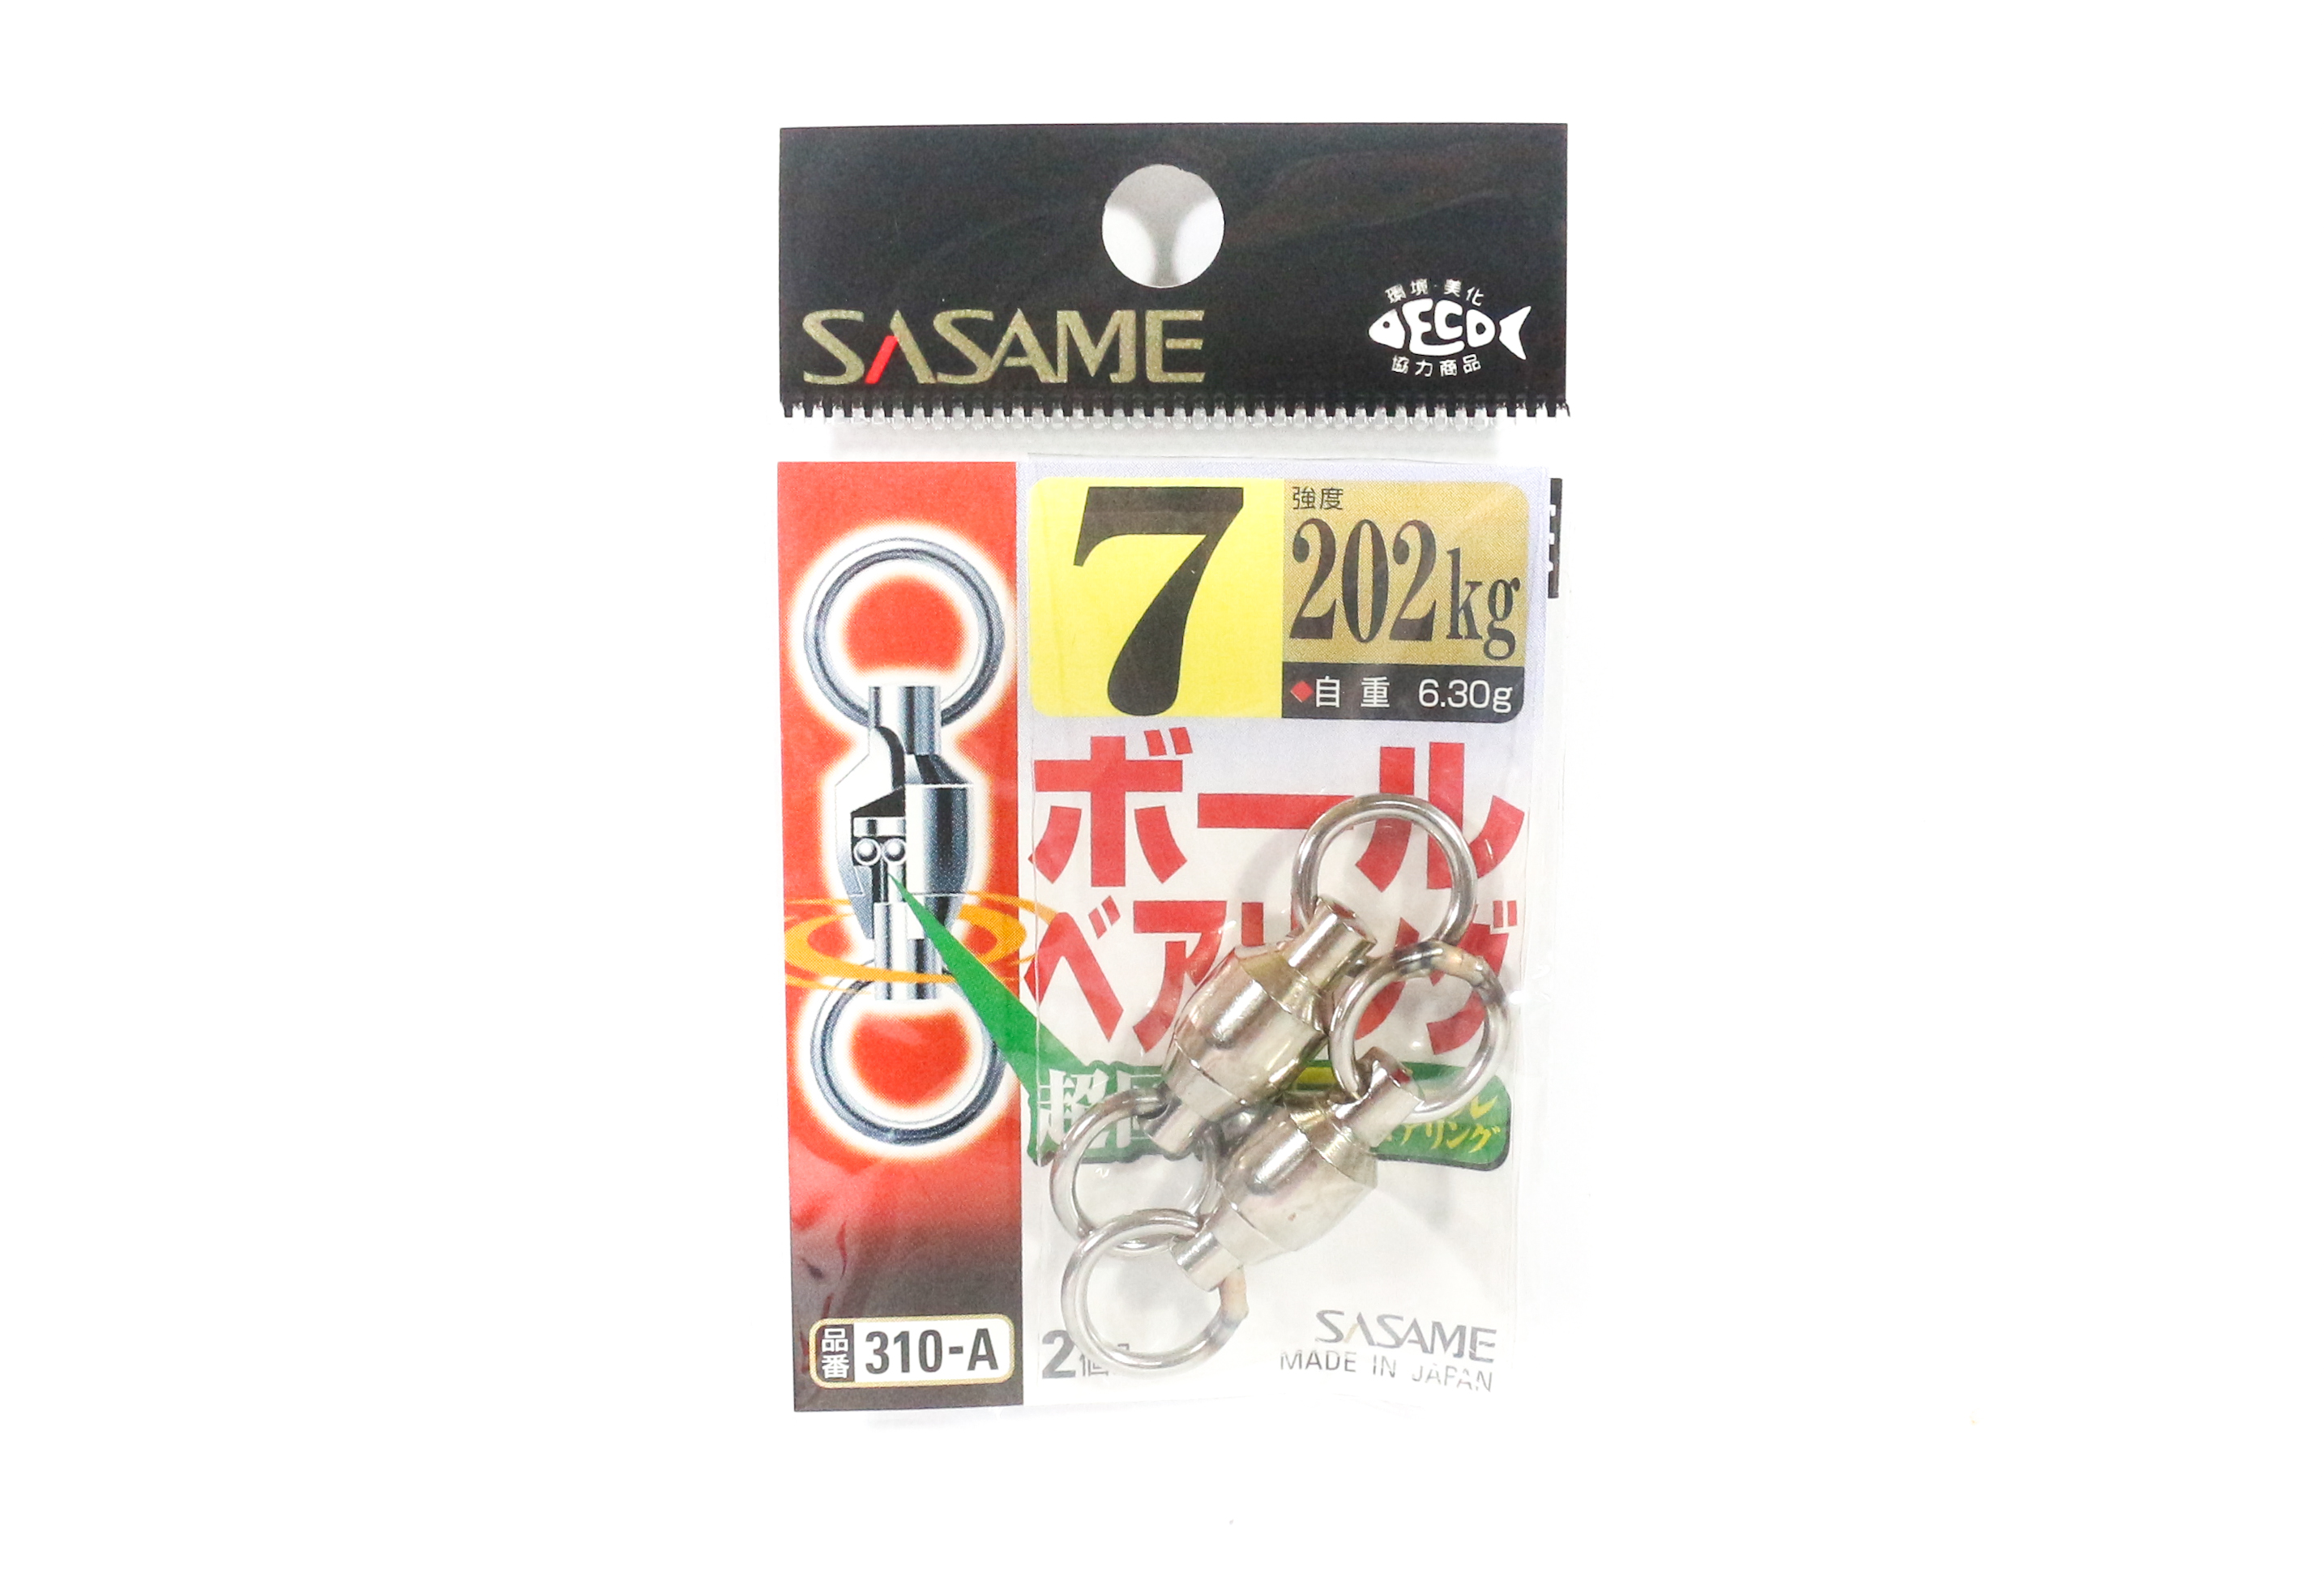 Sasame 310-A Ball Bearing Swivels High Quality Size 7 (1522)